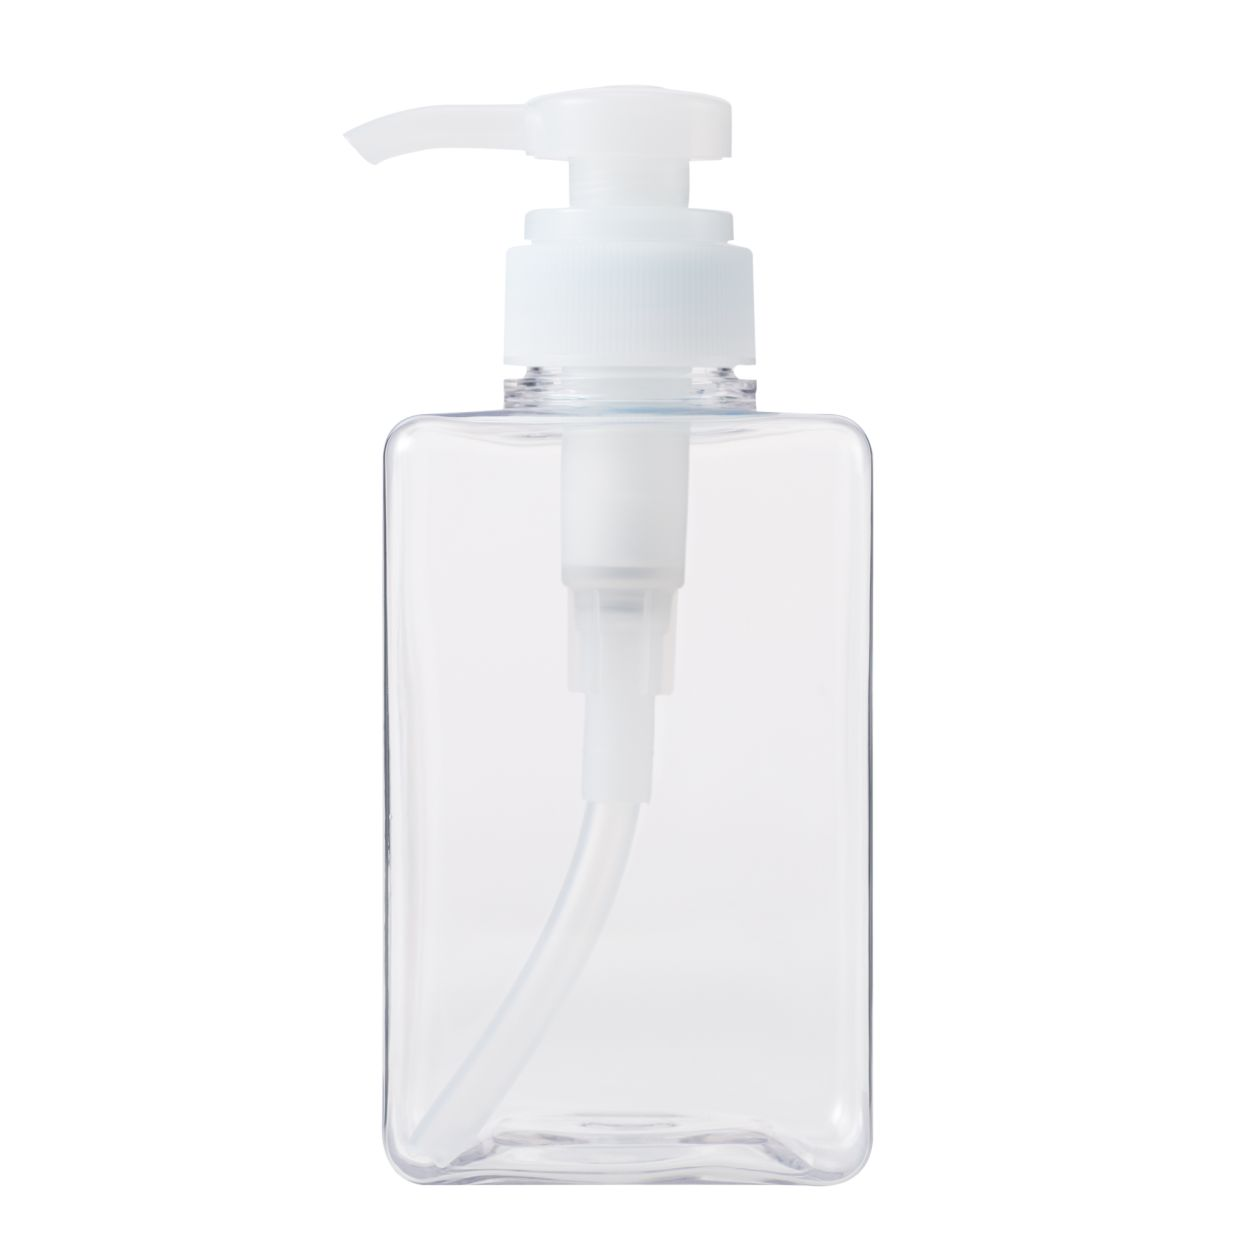 PET REFILL BOTTLE/CLEAR 400ml